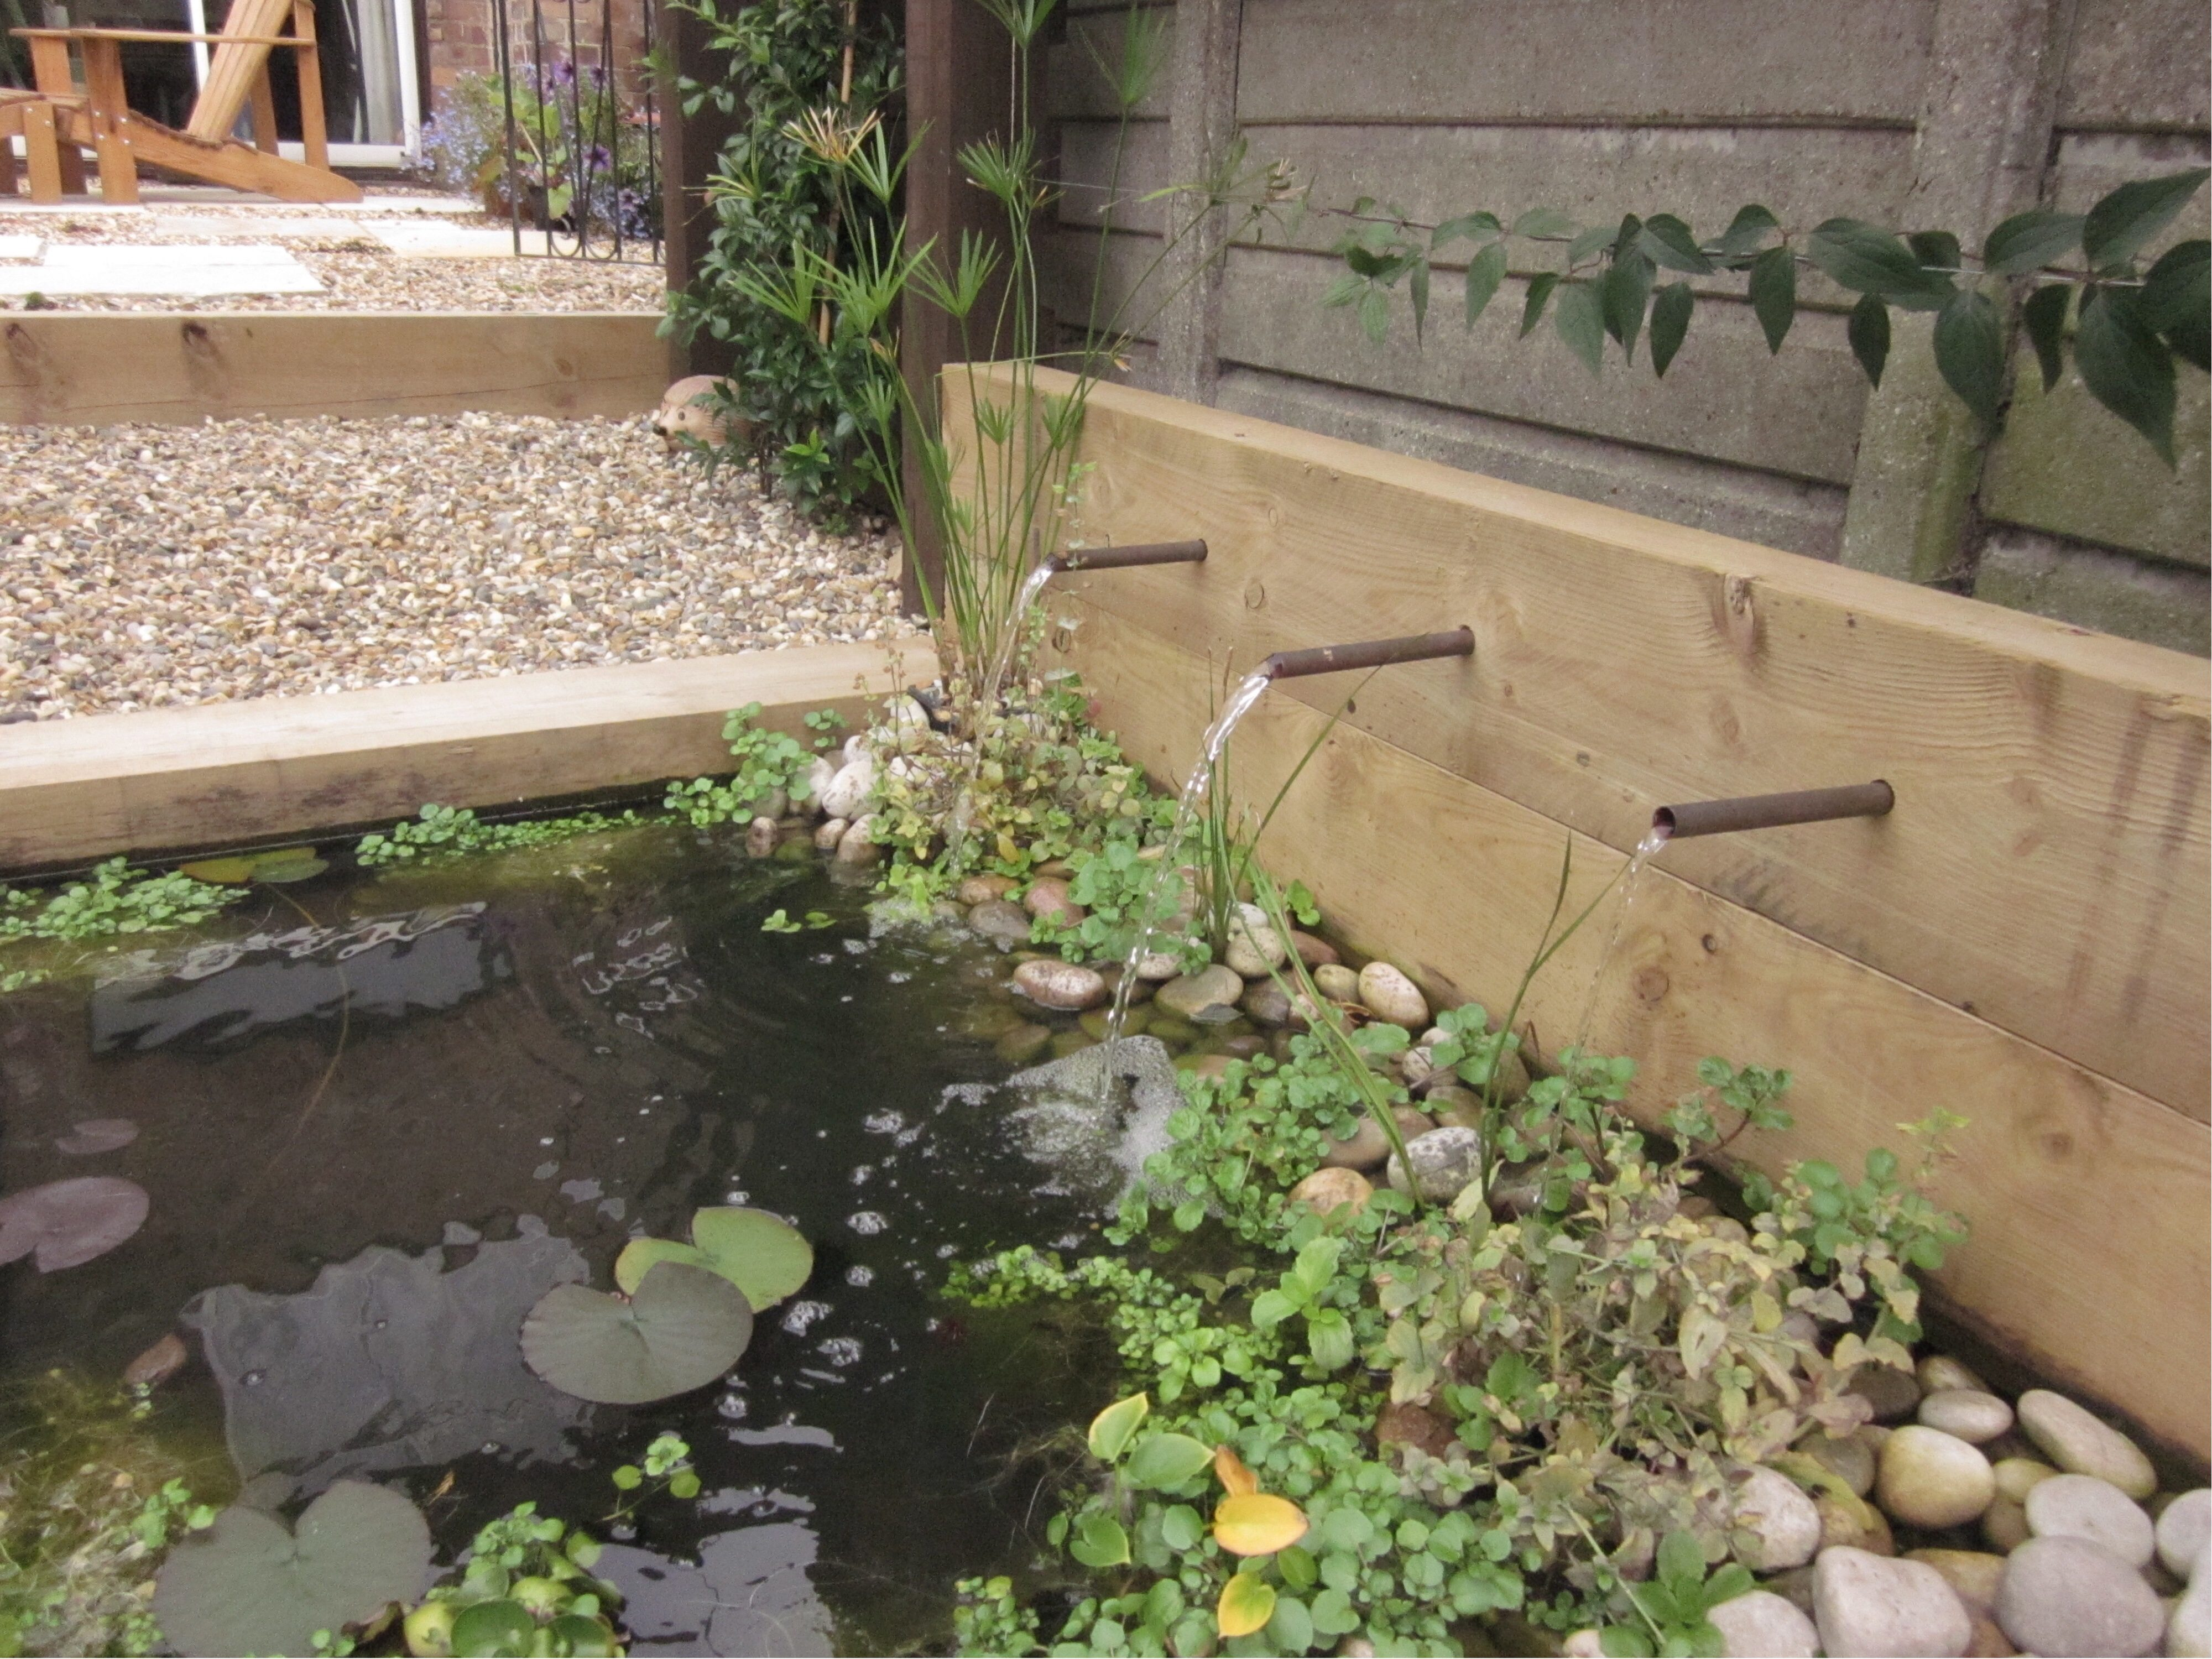 Garden Design Tips Railway sleepers - Earth Design's blog